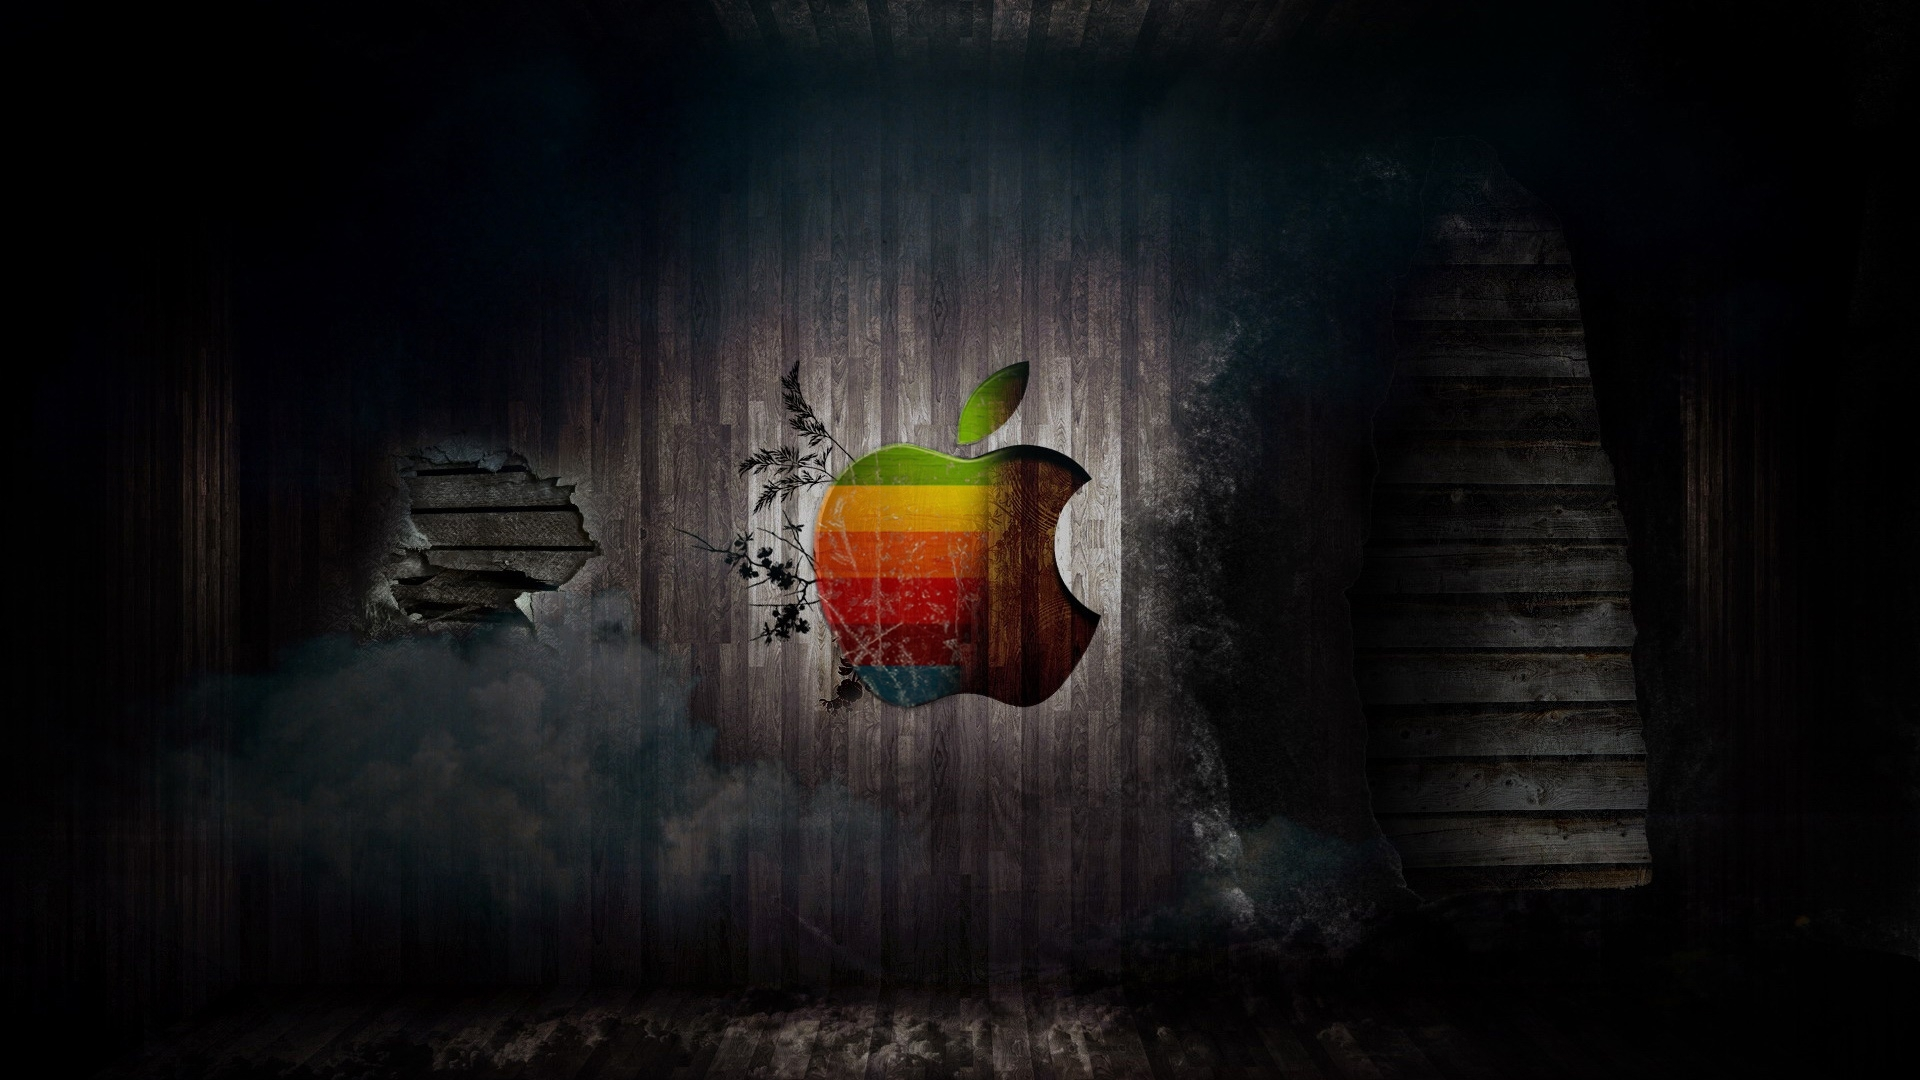 Apple logo fusion by MeGustaDeviantart